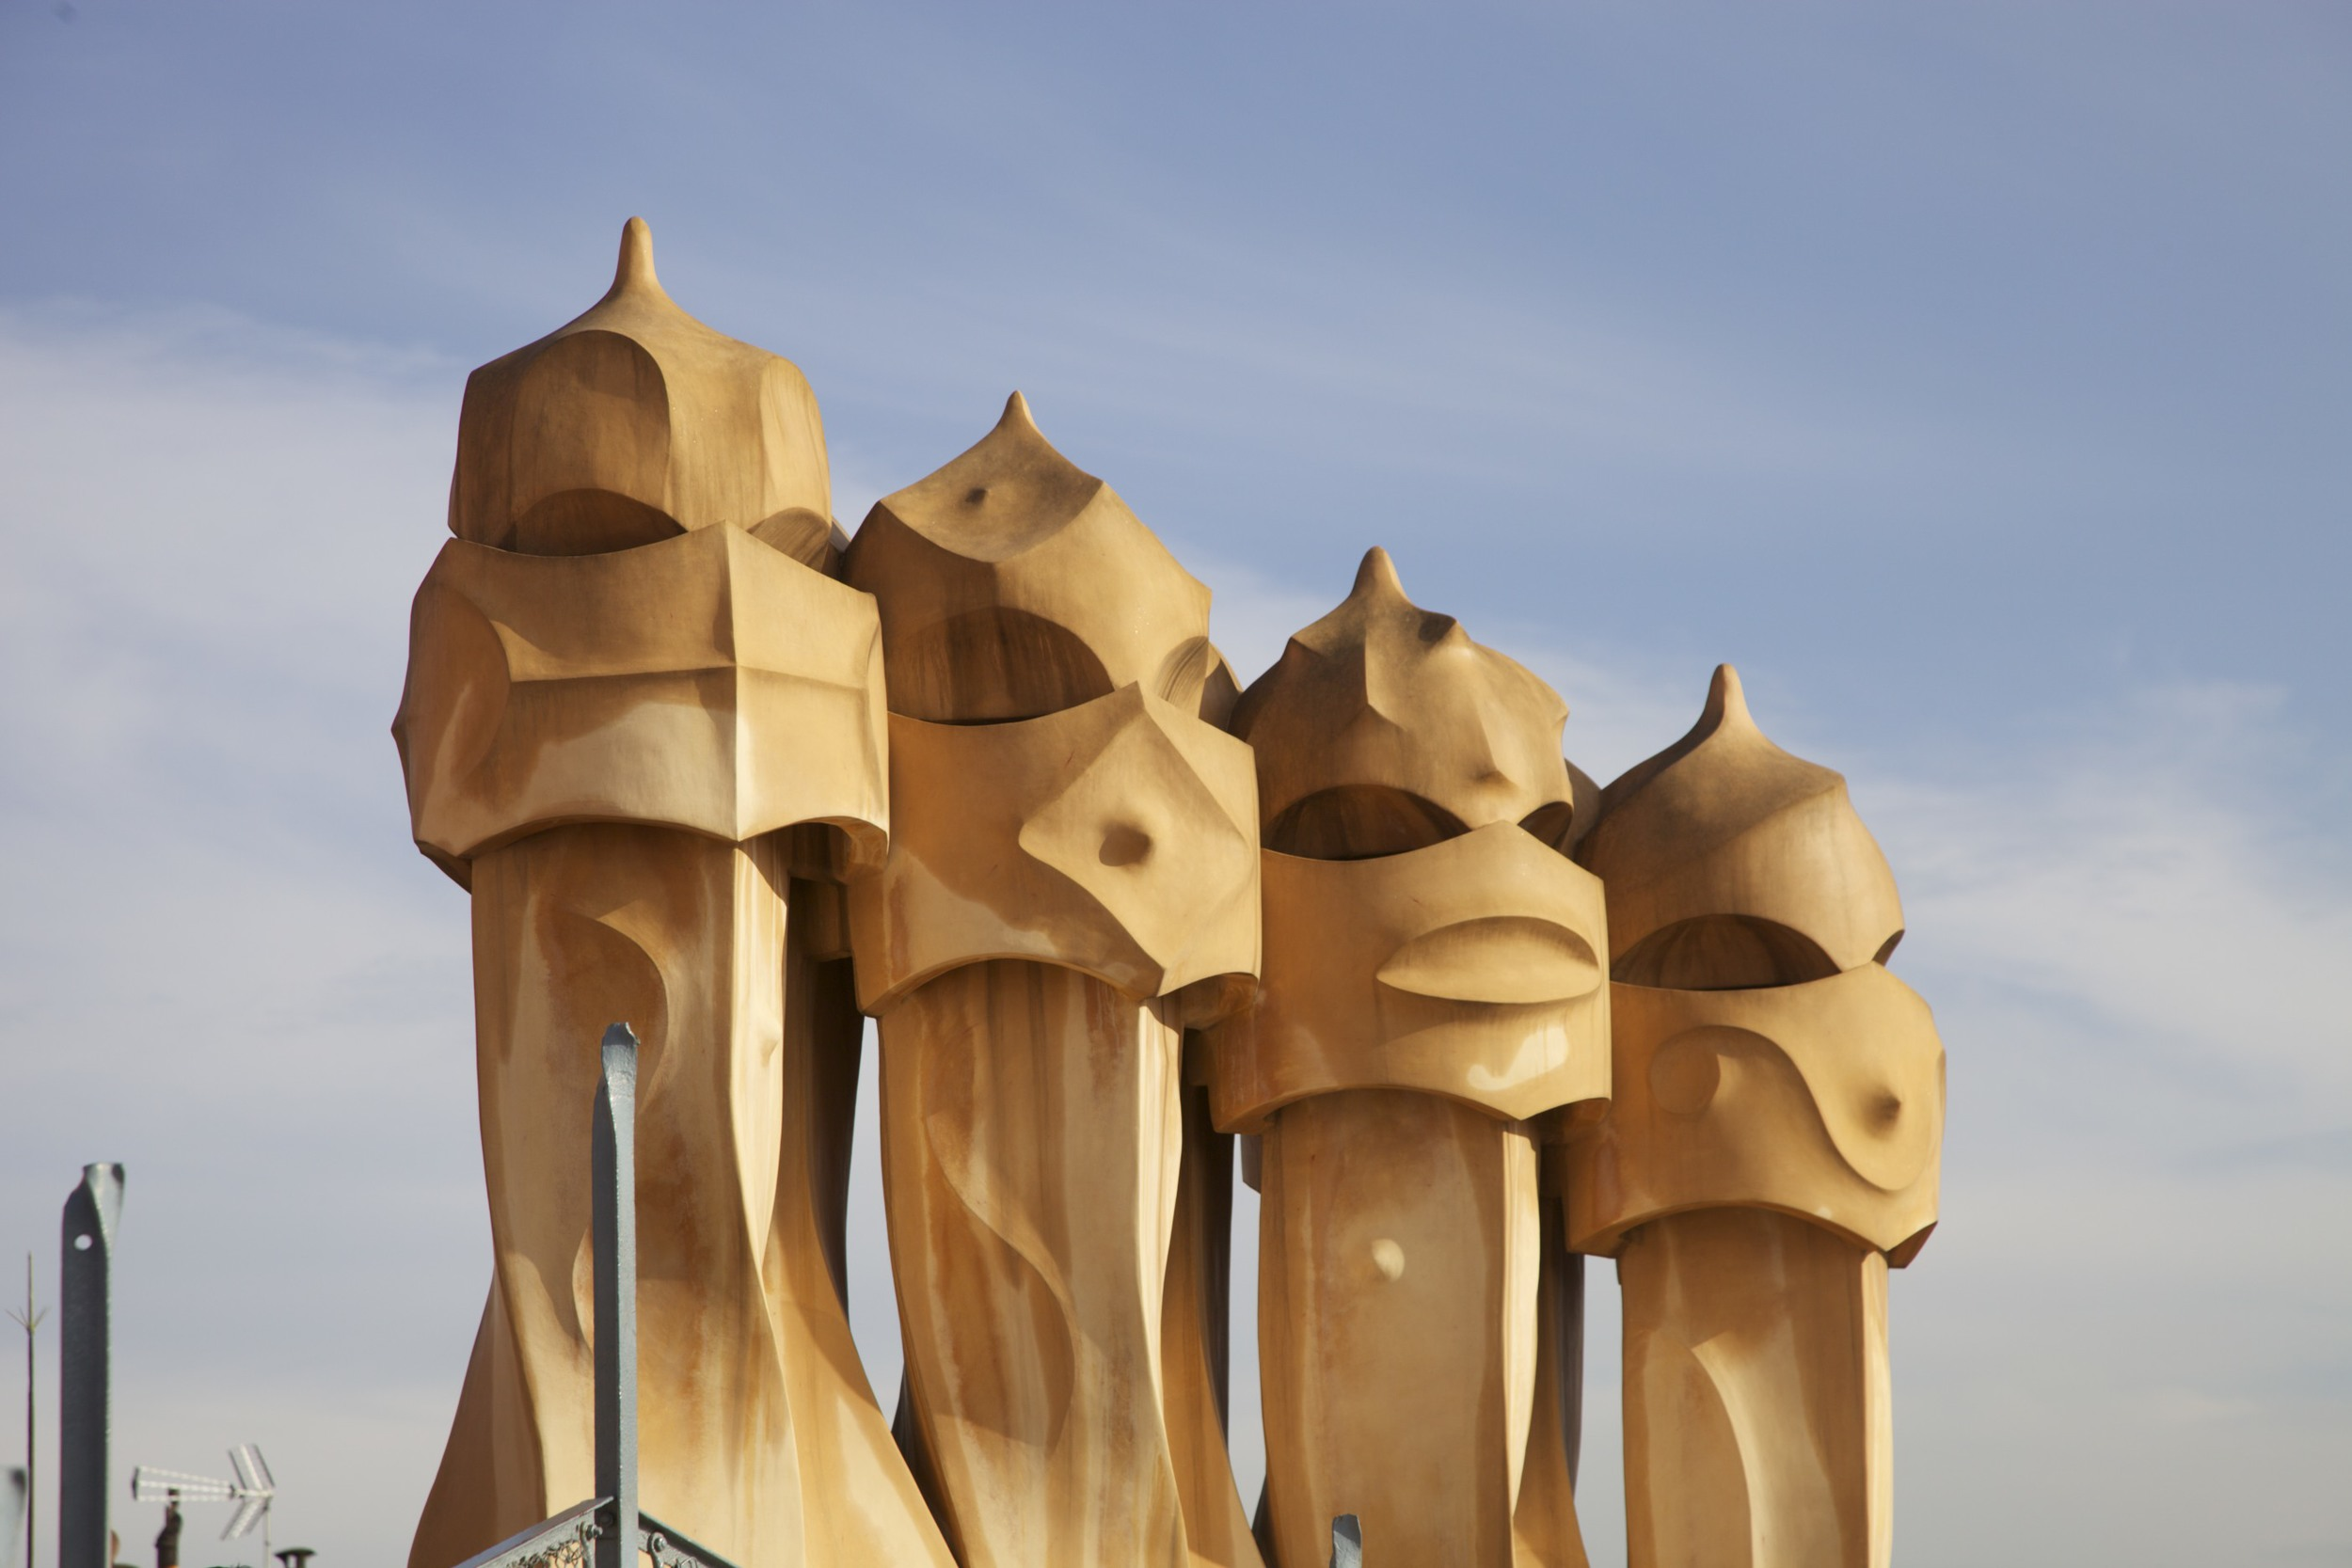 Chimneys on the roof of La Pedrera by Gaudí.